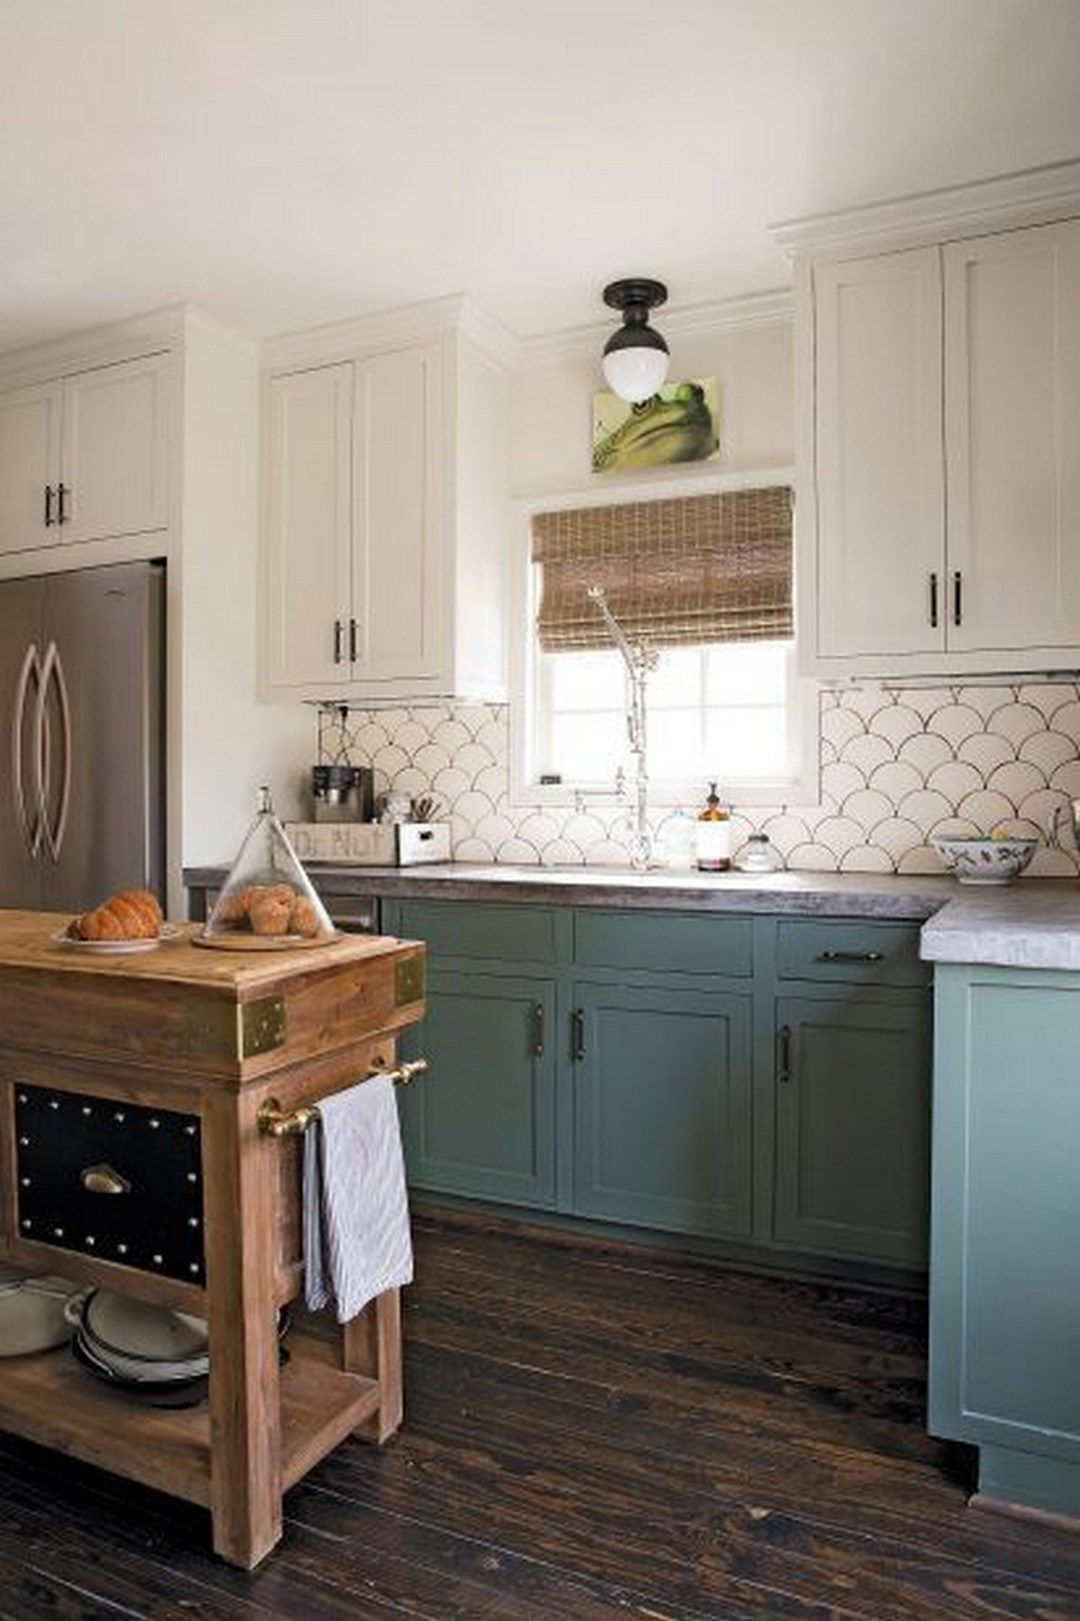 Simple And Modern Historic Homes Kitchen Details (46 #historichomes